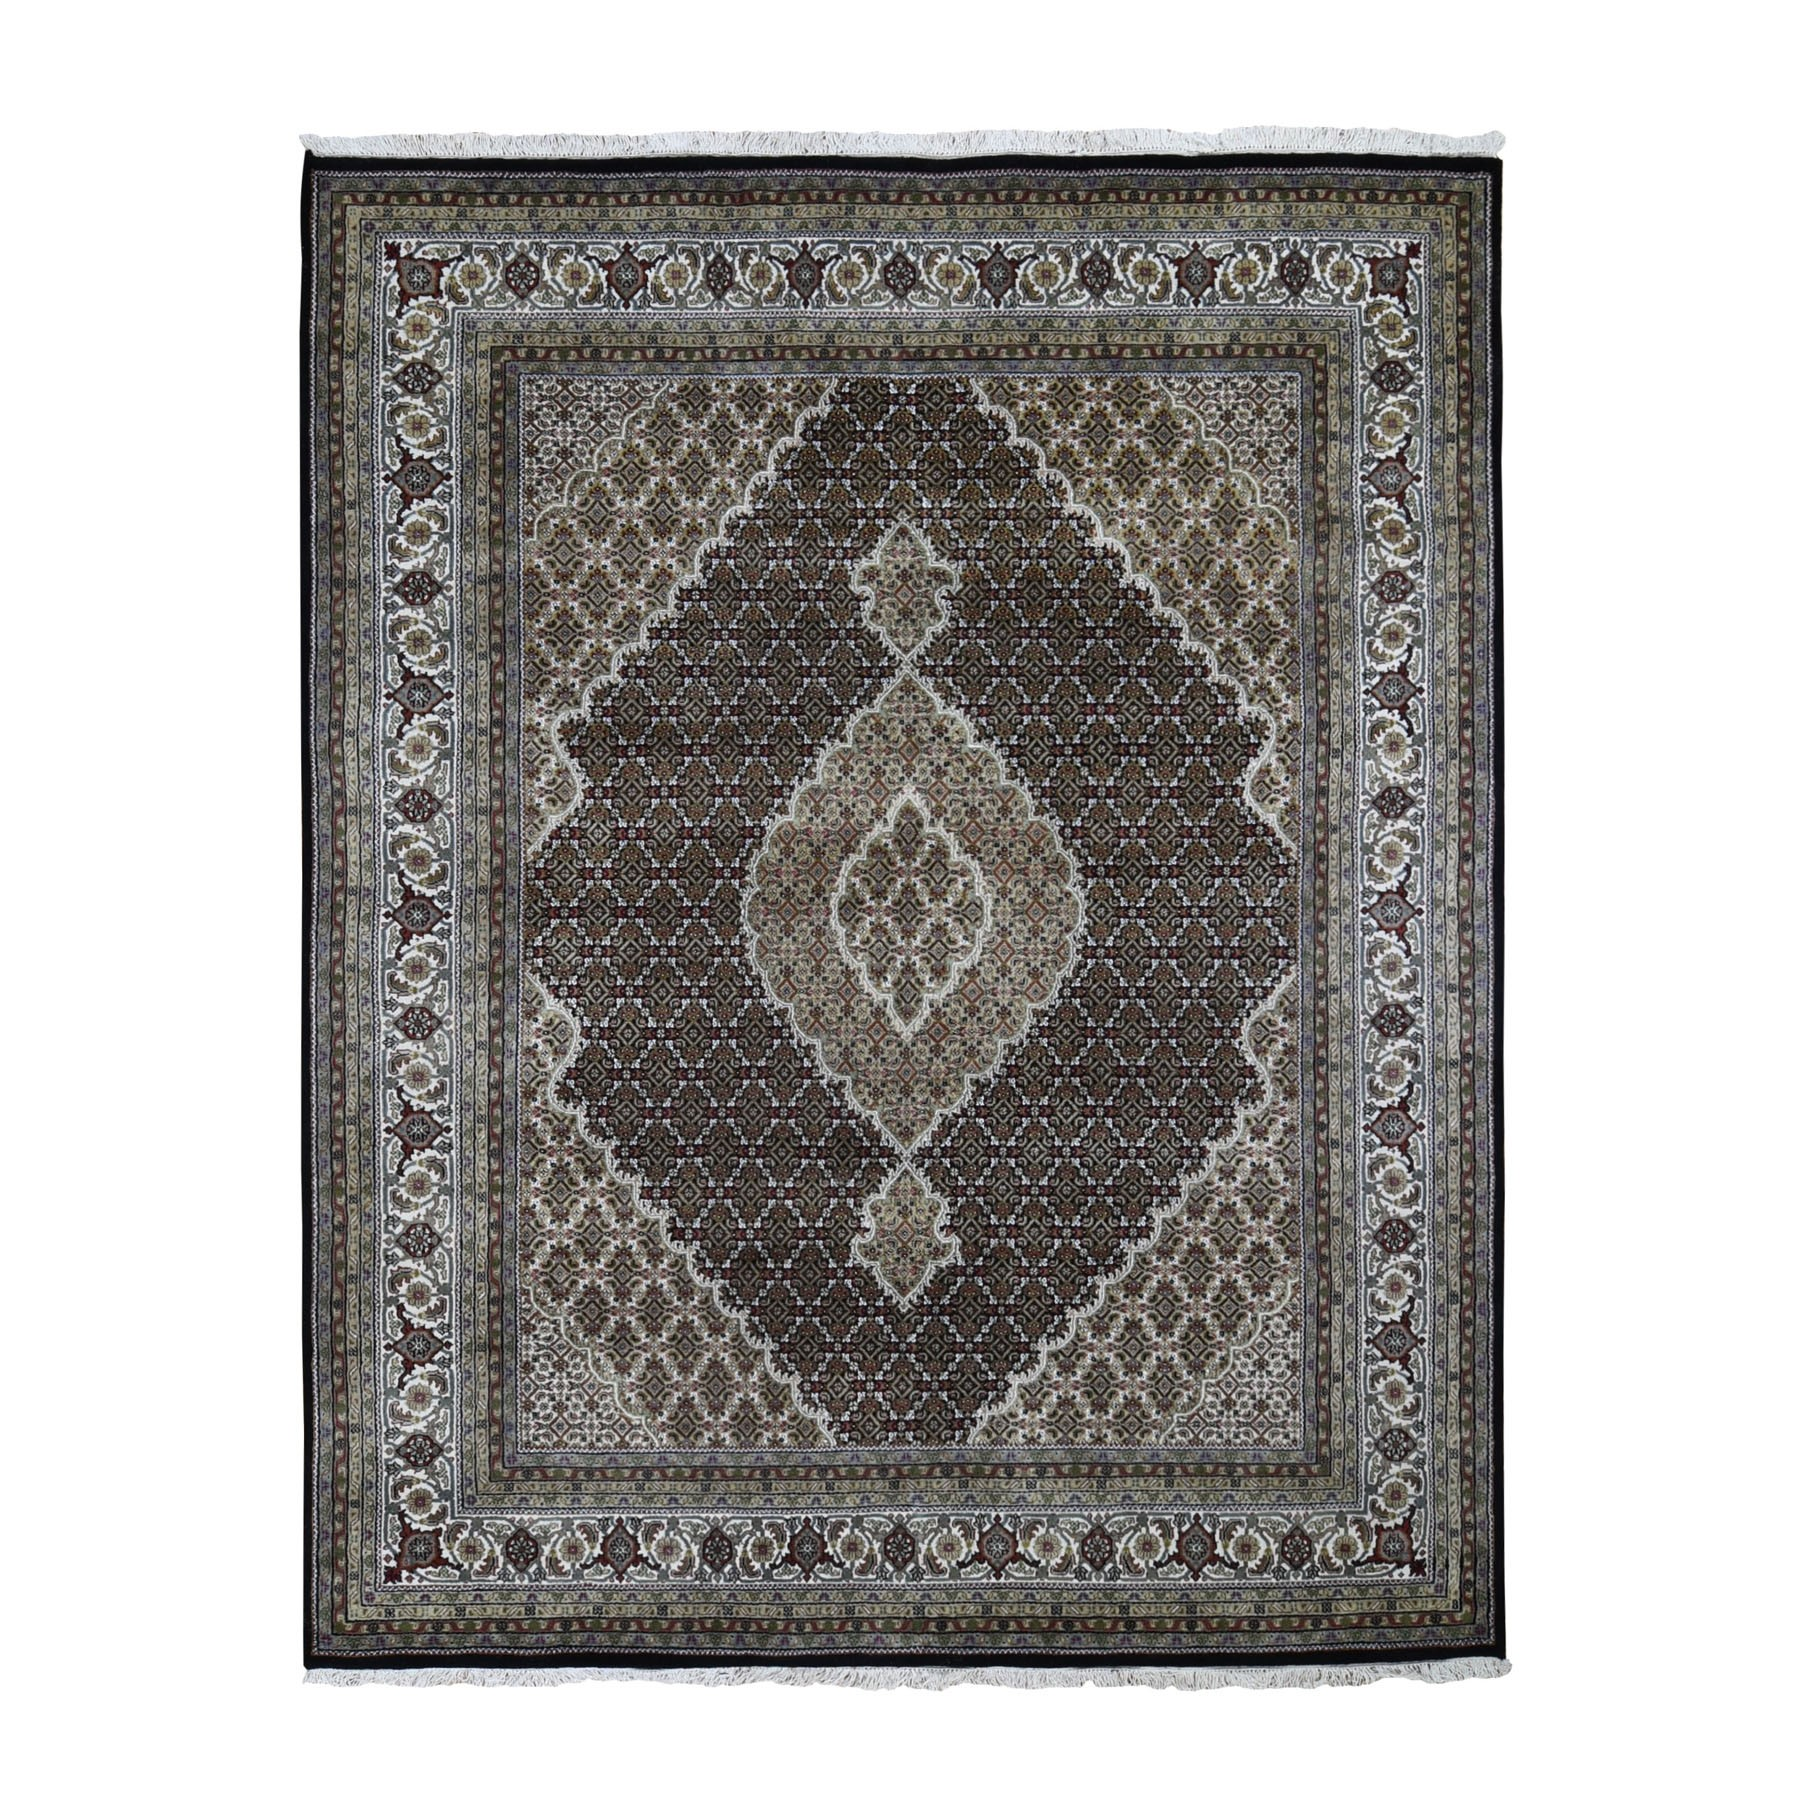 "7'10""x9'10"" Black Tabriz Mahi Wool And Silk Hand Woven Oriental Rug"